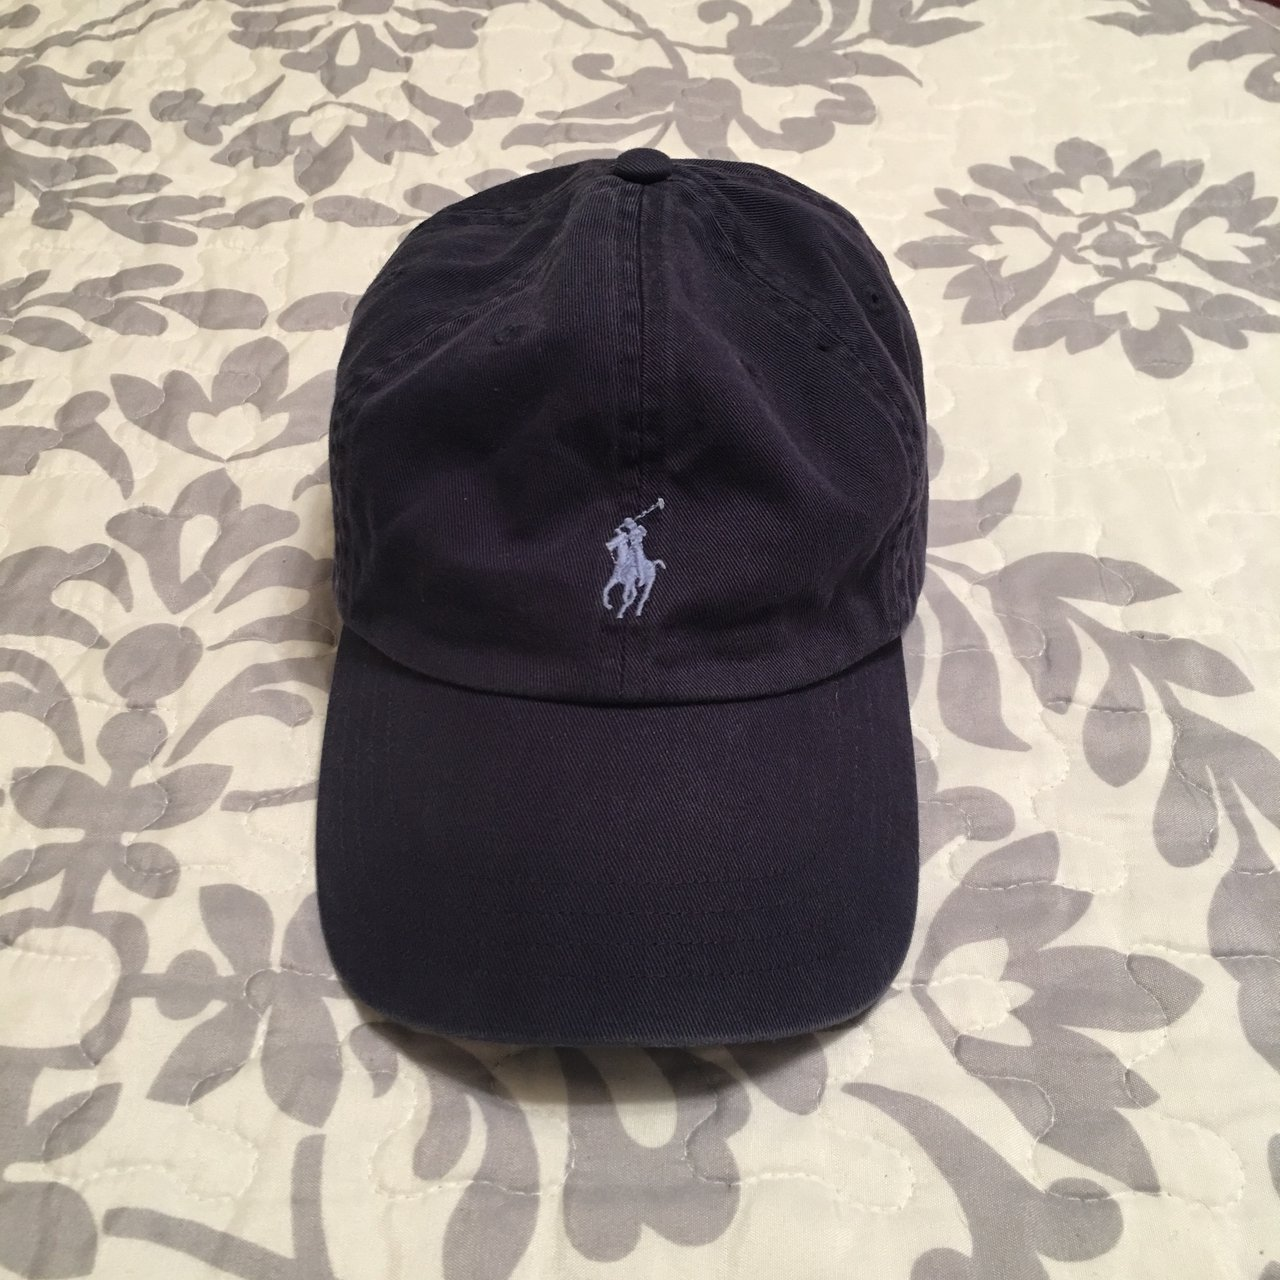 77defb34820 polo ralph lauren dad hat condition